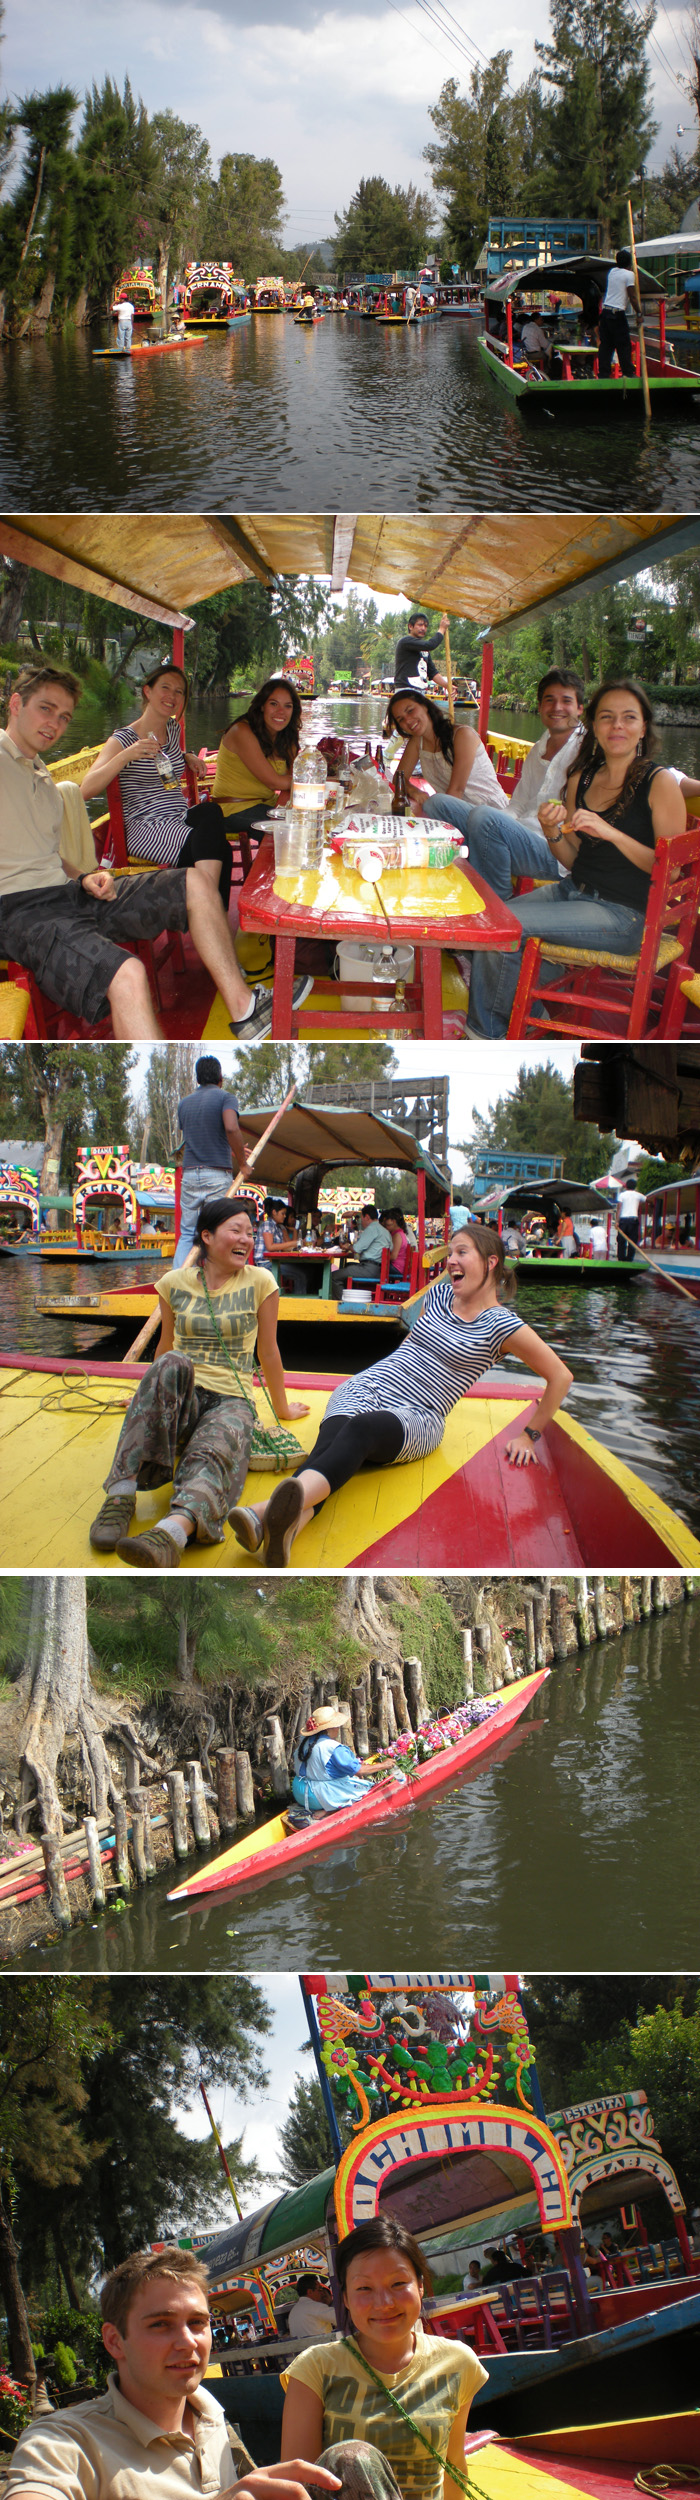 Happy saturday in Xochimilco to feel real Mexican folklore in Xochimilco